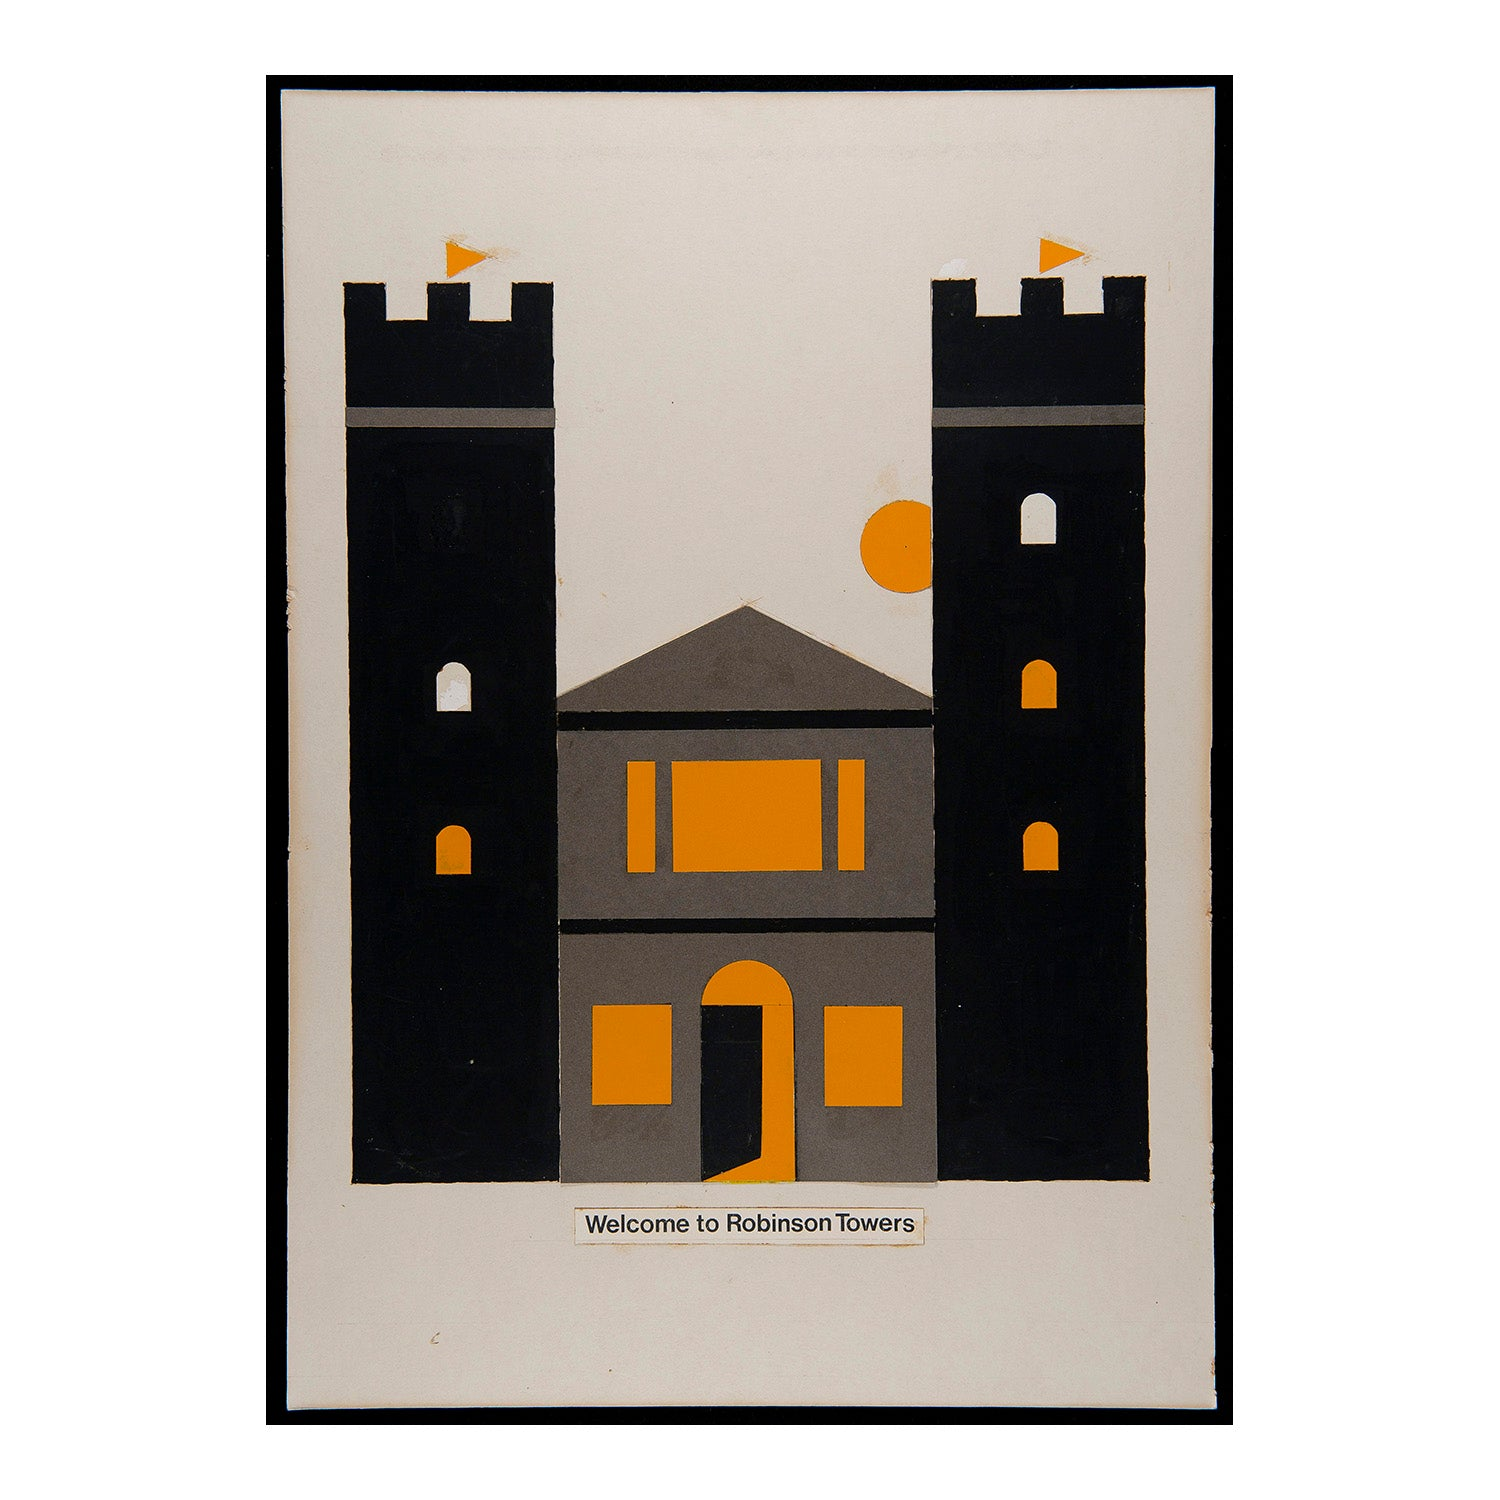 Welcome to Robinson Towers (Tom Eckersley)